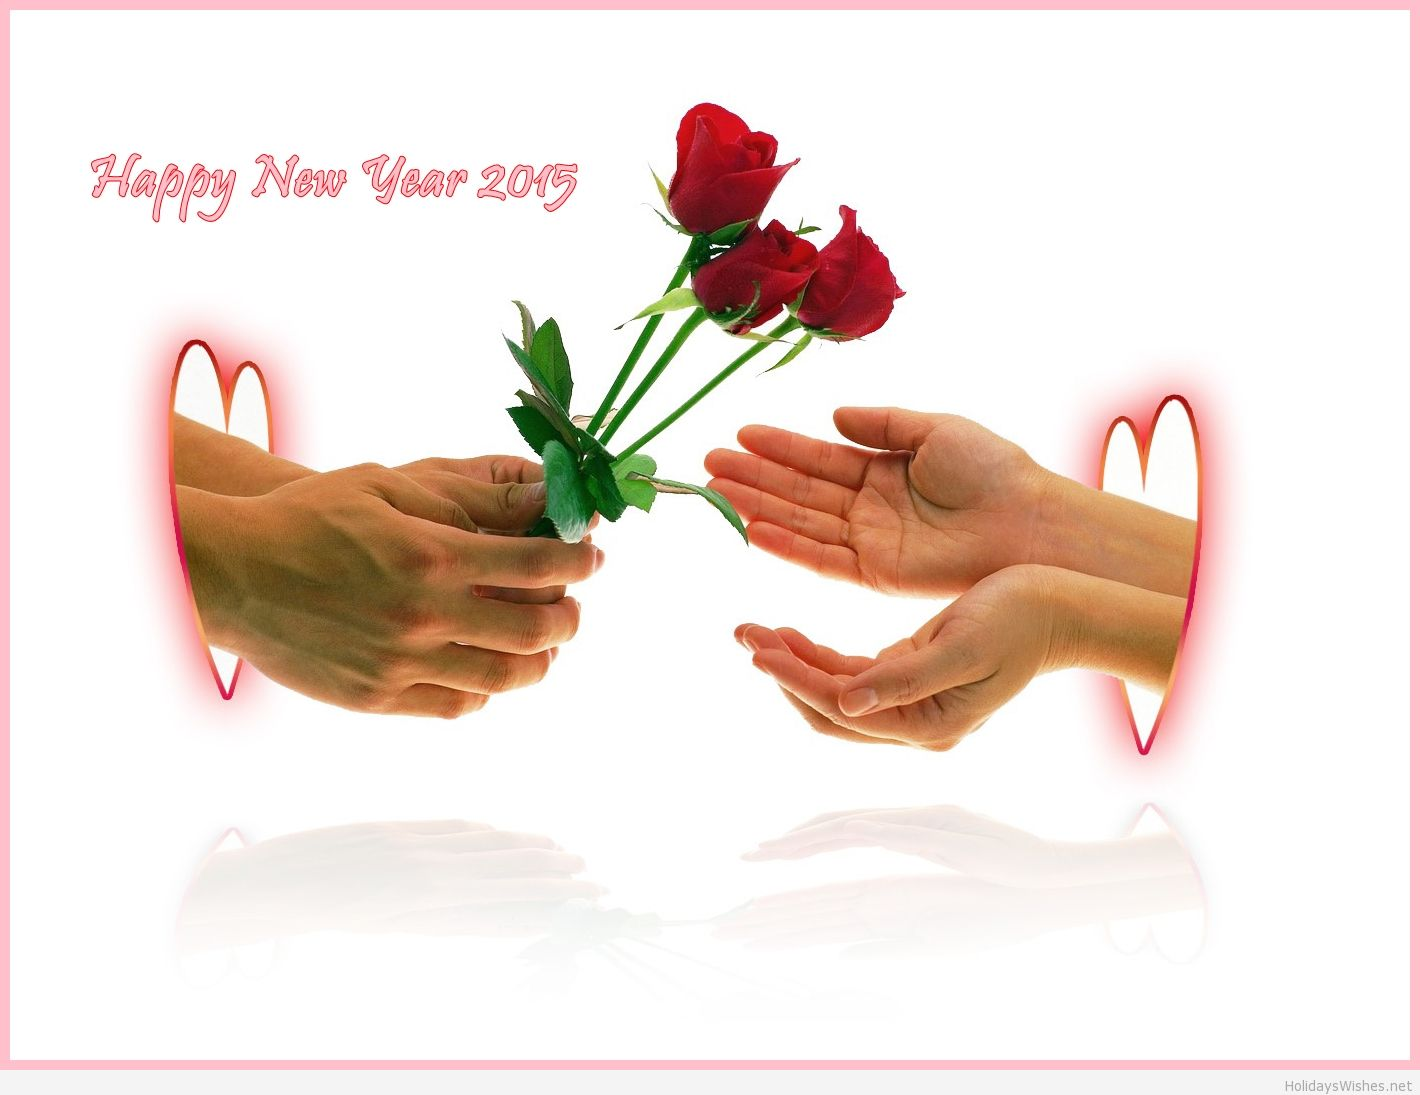 happy new year 2018 love propose wallpaper desktop best wallpapers 1420x1095 love 2018 wallpaper wallpapersafari love flowers full hd wallpaper flowers